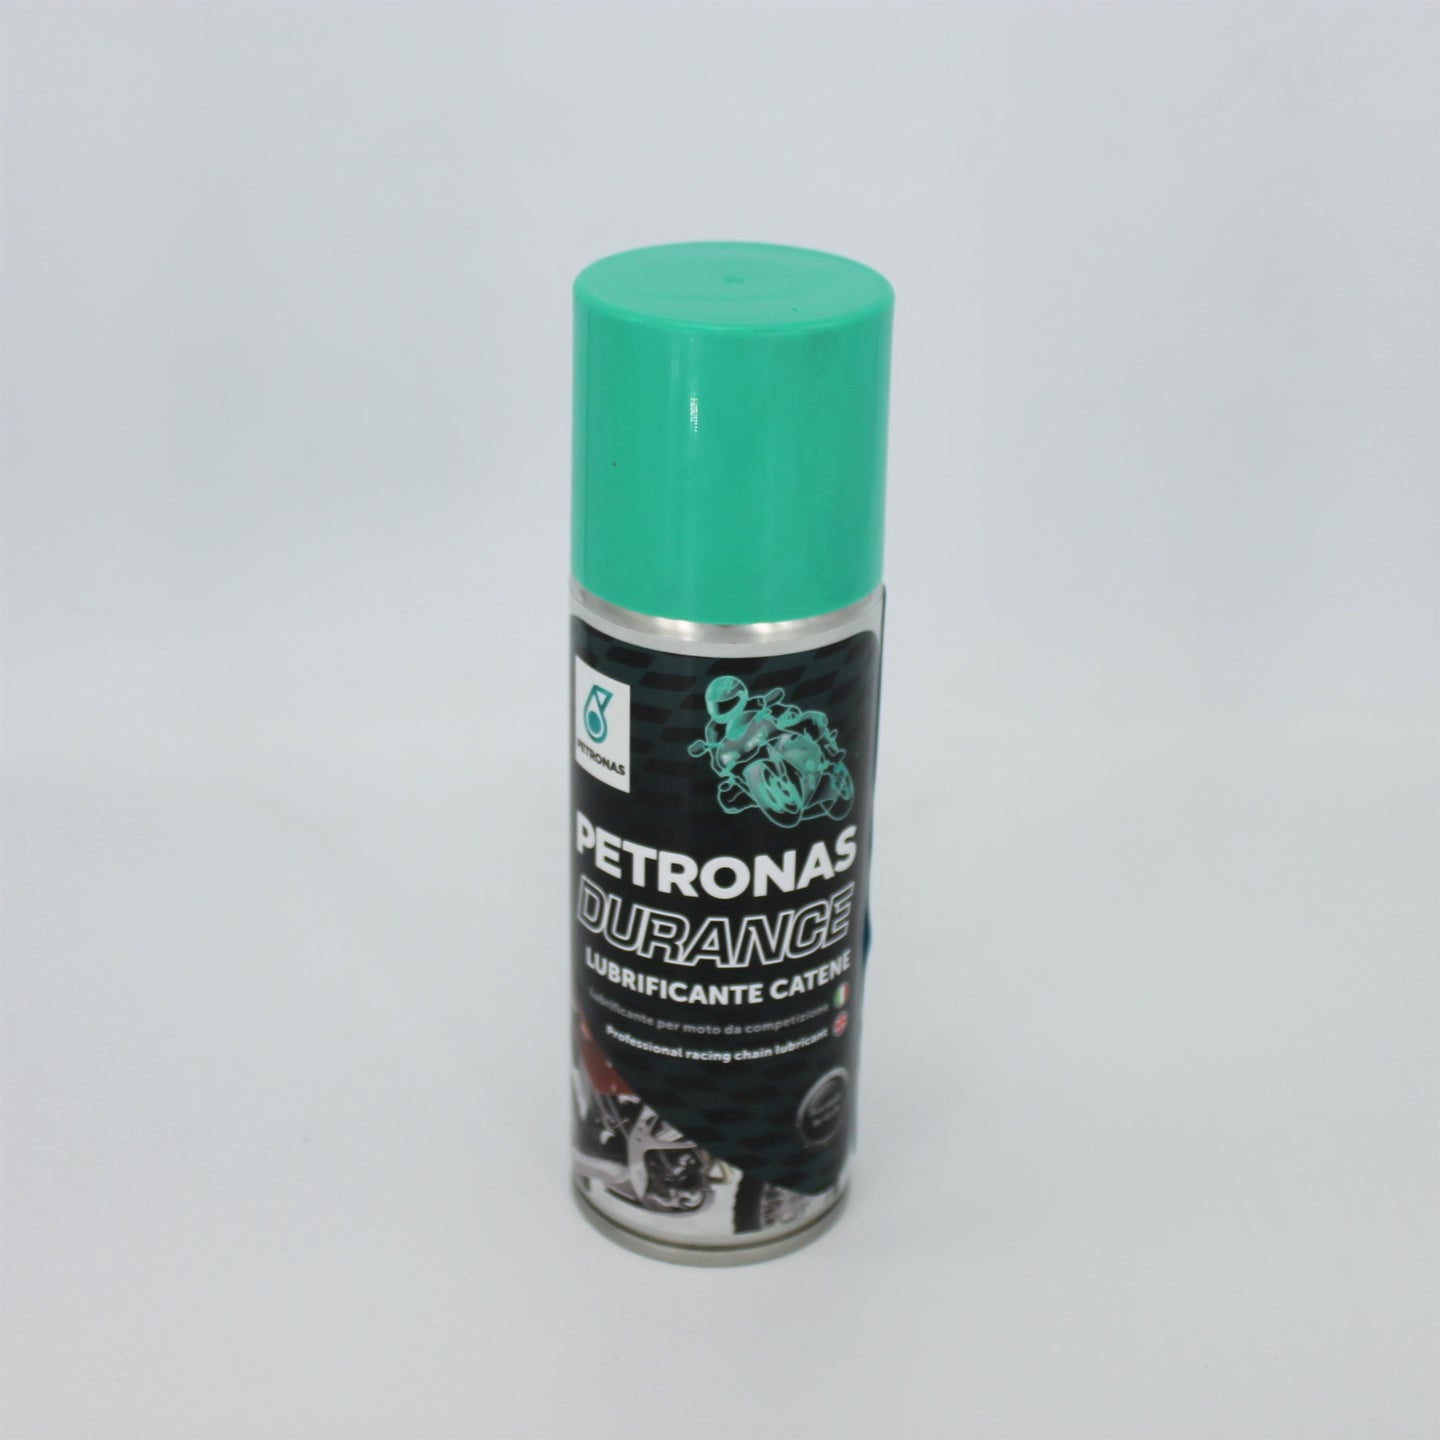 Petronas Durance Chain Lube - 200ml